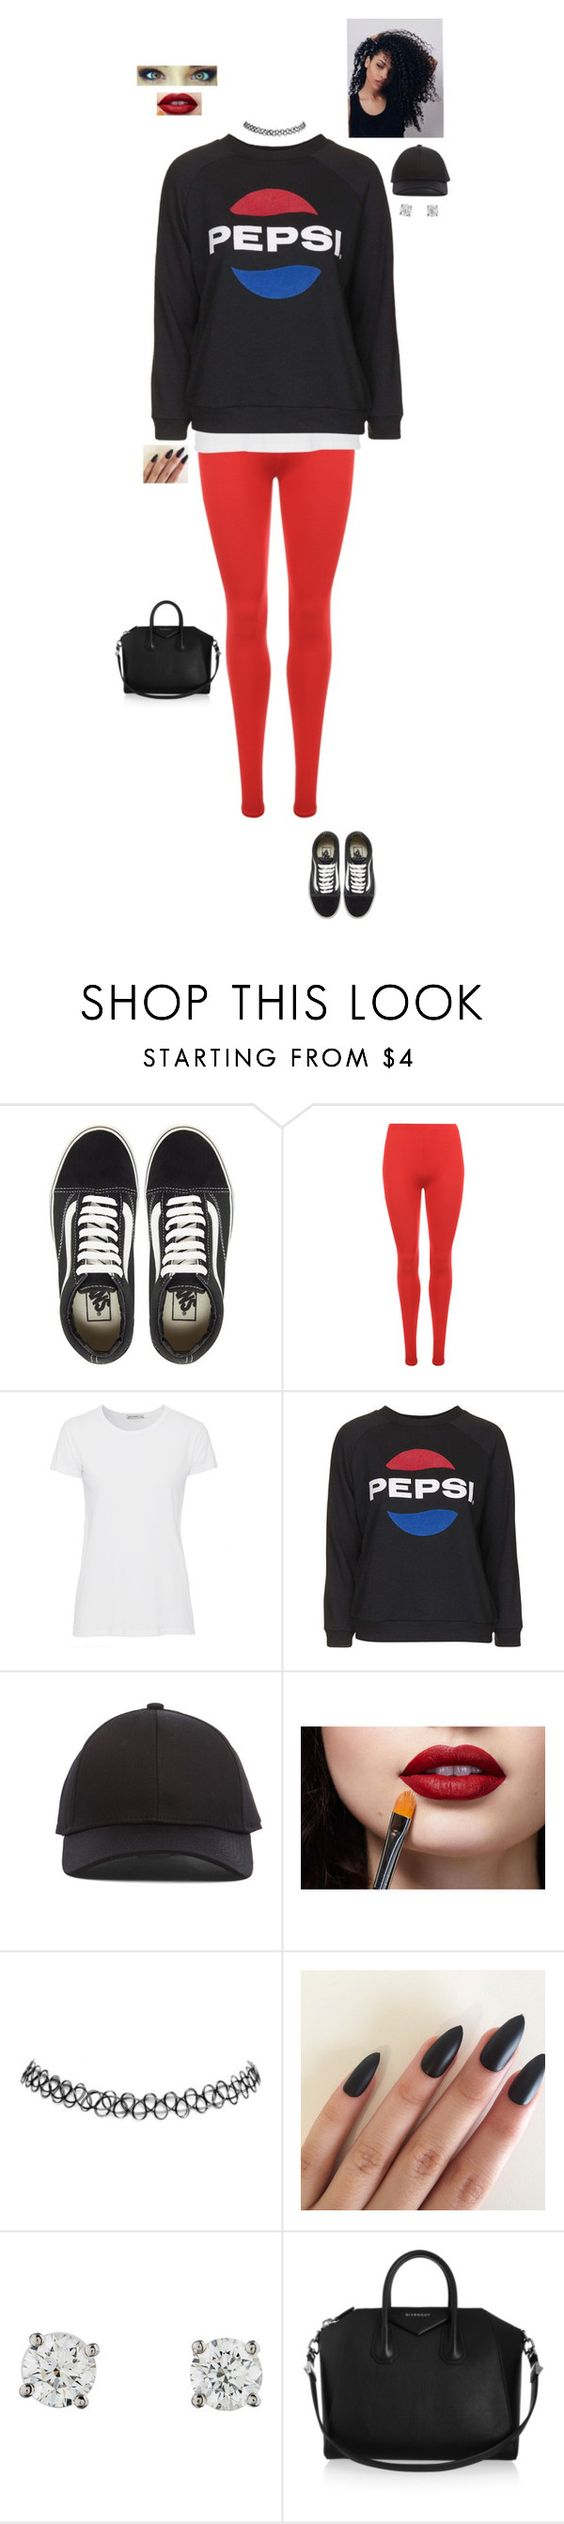 """""""18.7.16"""" by jesshorne2016 ❤ liked on Polyvore featuring Vans, WearAll, AG Adriano Goldschmied, Topshop, Acne Studios, Wet Seal, Tiffany & Co. and Givenchy"""